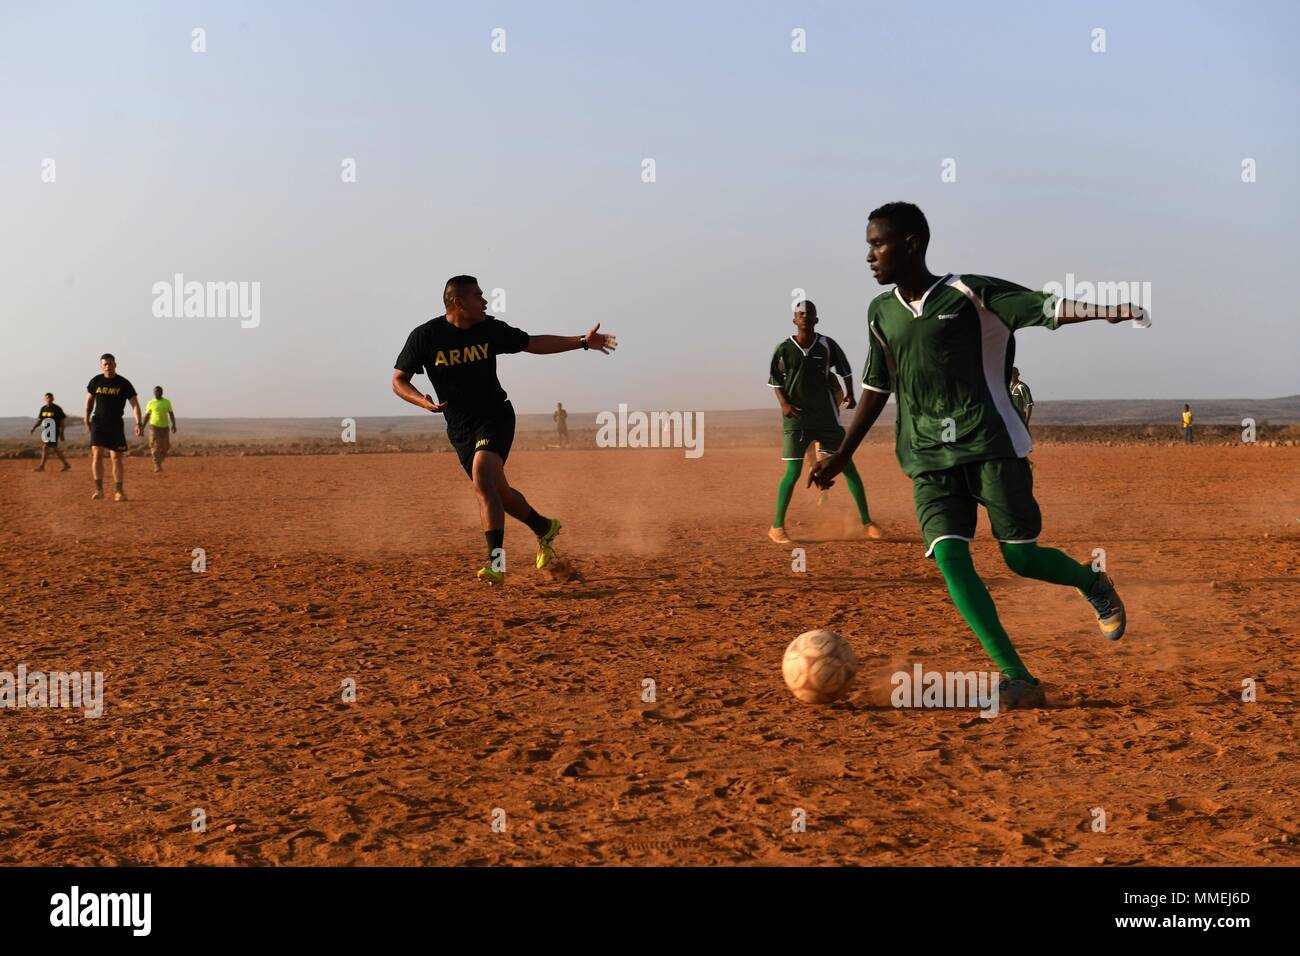 U.S. Army infantry soldiers from 10th Mountain Division and 3-144 Infantry Regiment and members of the Djibouti Armed Forces (FAD) assigned to the Rapid Intervention Battalion, play soccer in Djibouti May 10, 2018, May 10, 2018. Members of the RIB go through a five week course covering combatives, weapons, and combat lifesaving skills. (U.S. Air Force photo by Airman 1st Class Haley D. Phillips). () Stock Photo